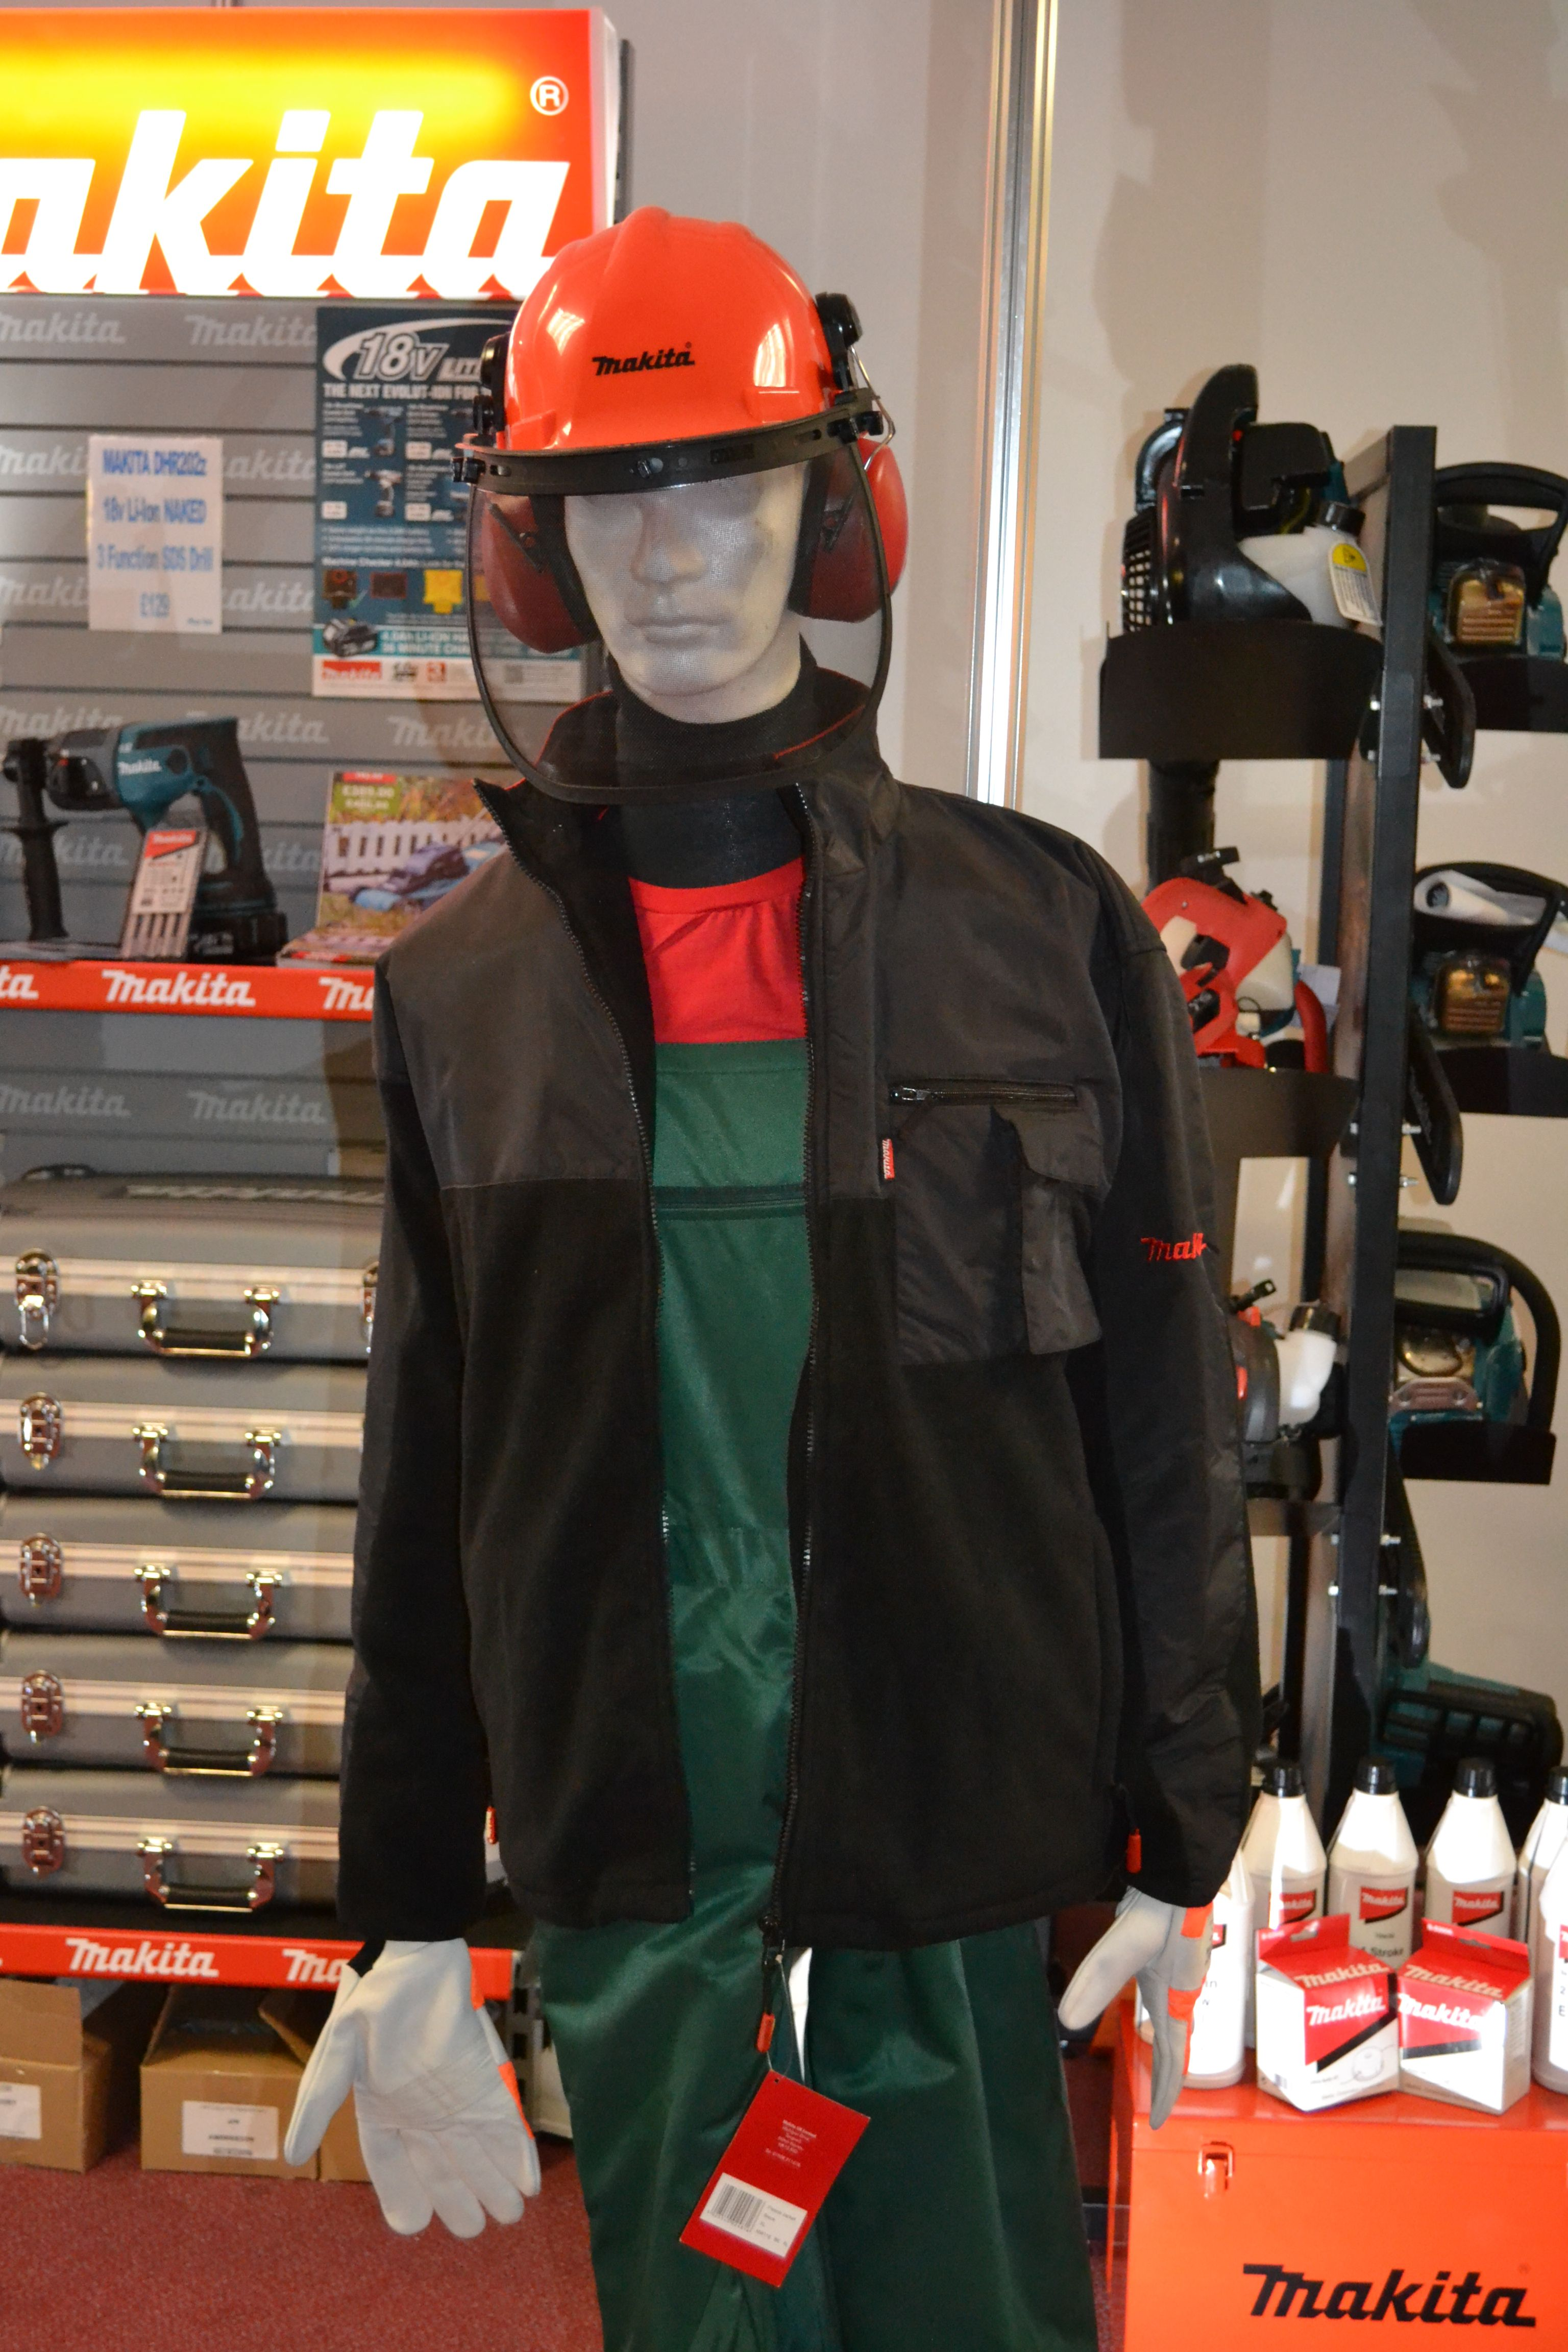 Makita safety equipment on display at LandScape Live 2014